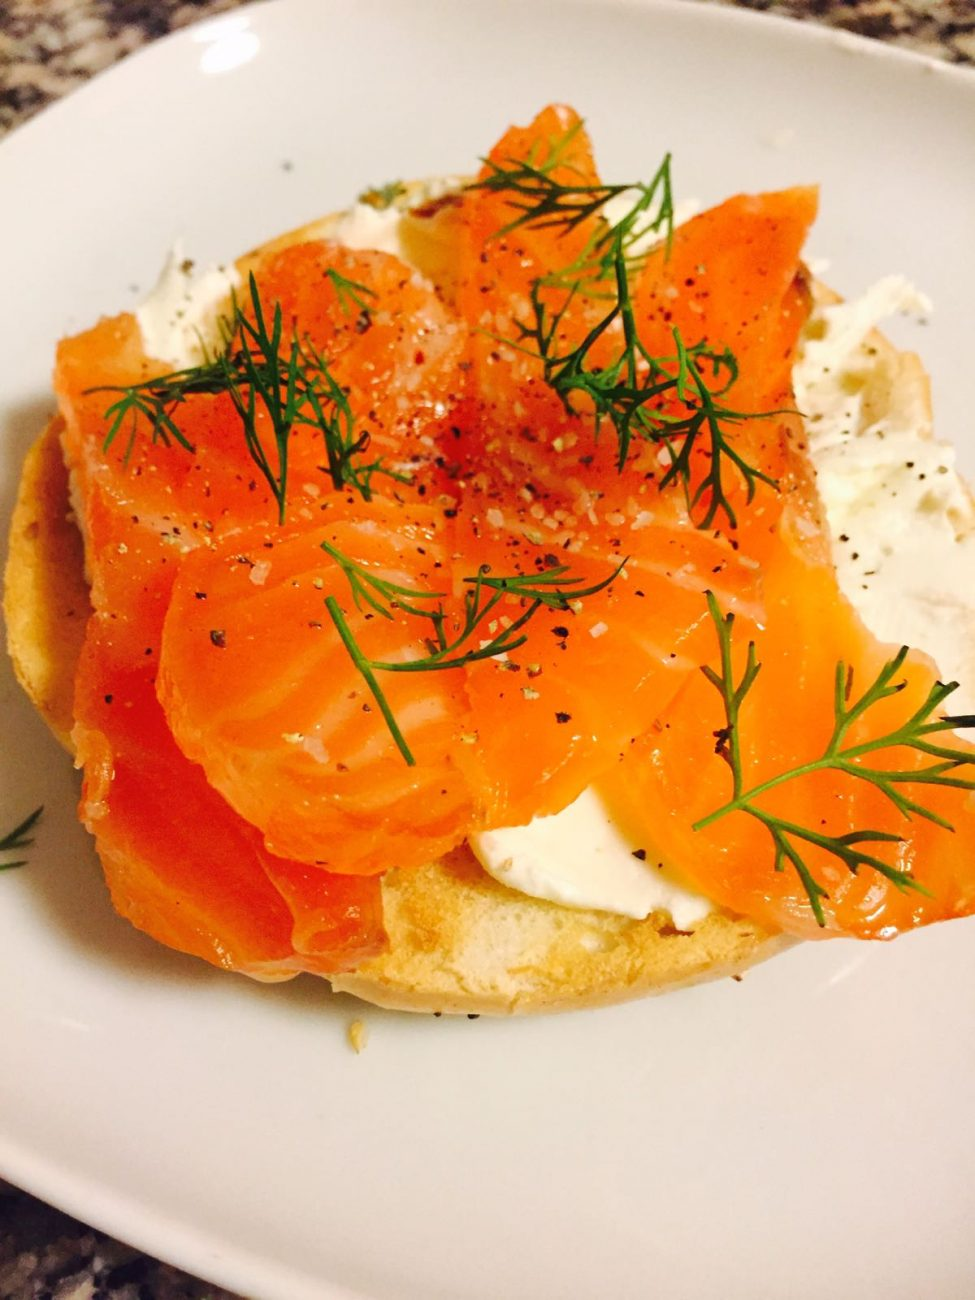 Homemade Salmon Lox (Or Gravlax)